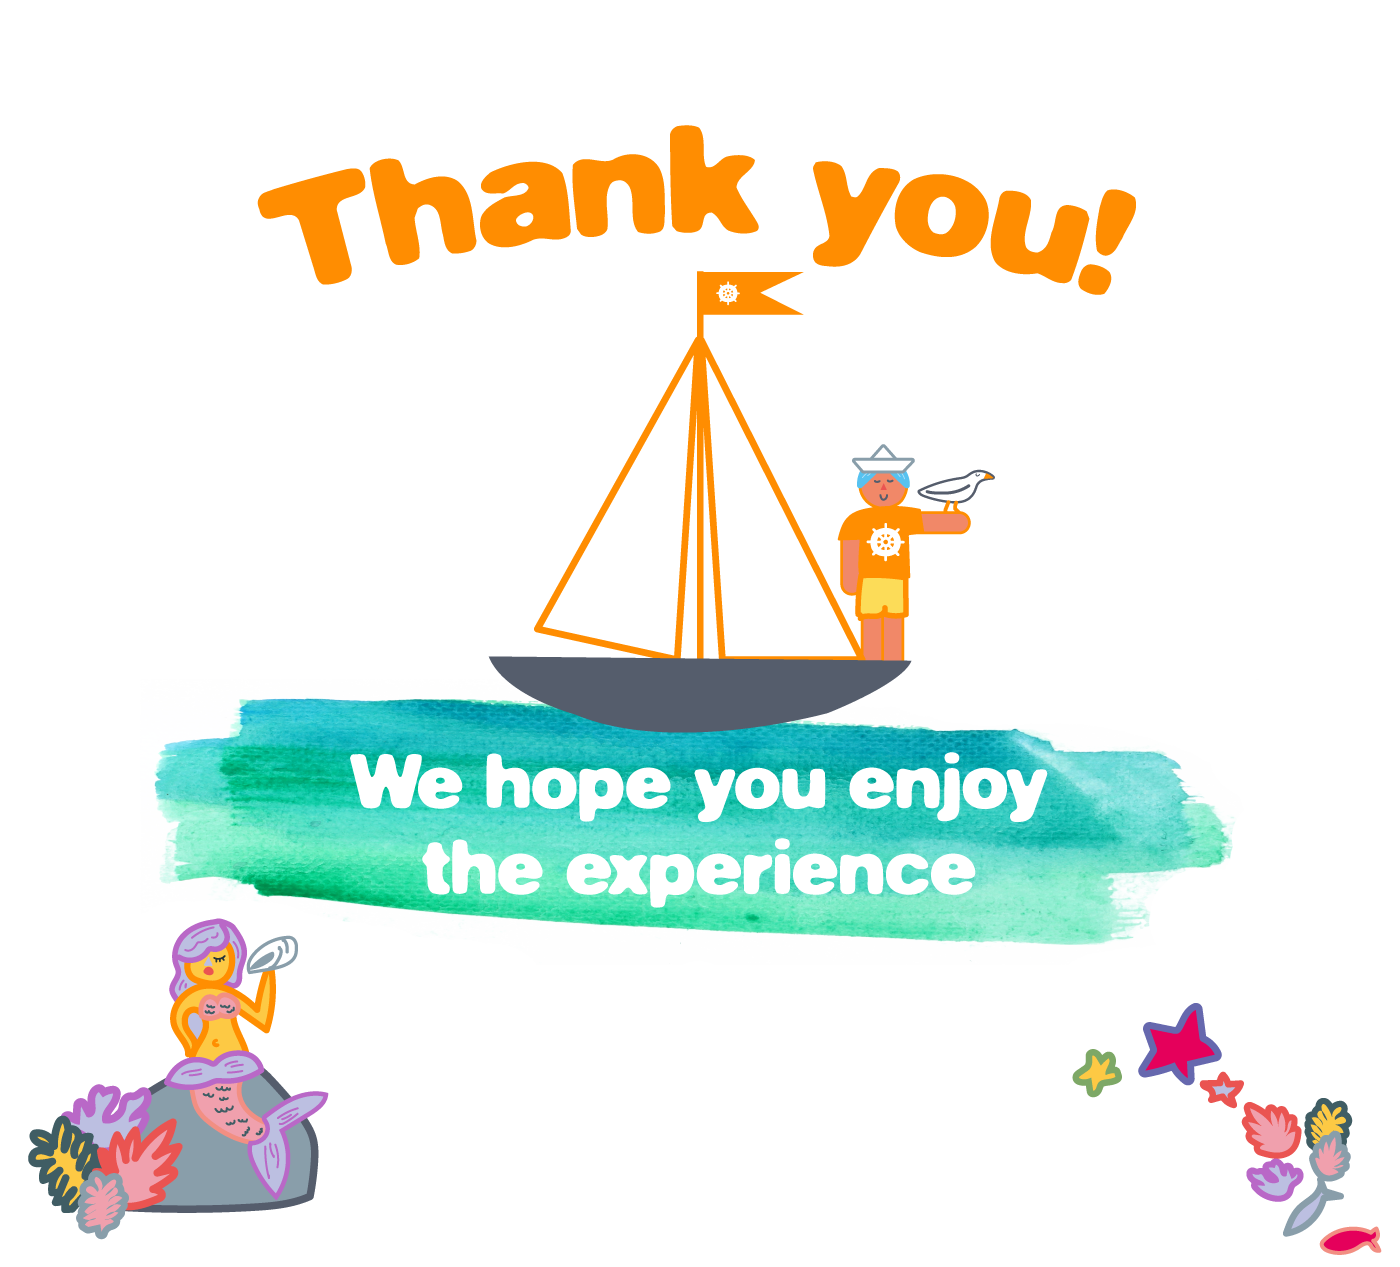 thank-you-page-wannaboats-01